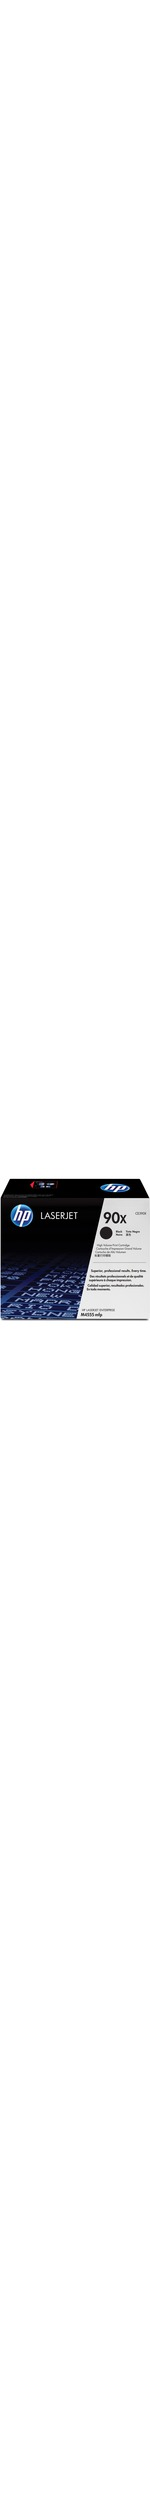 HP 90X Toner Cartridge - Black - Laser - 24000 Page - 1 Each